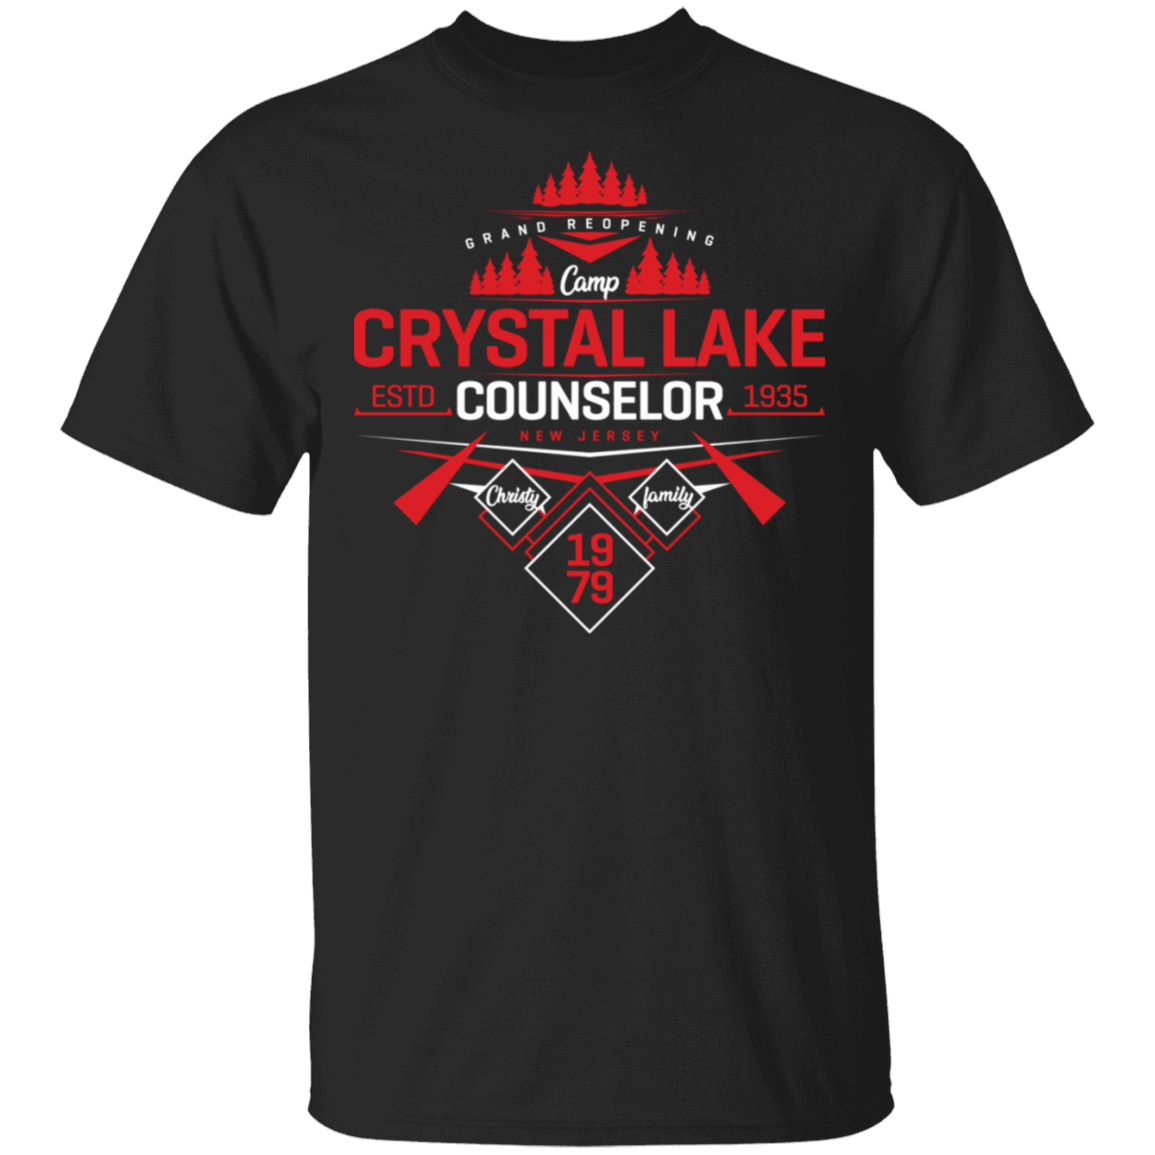 Crystal Lake Counselor T-Shirt